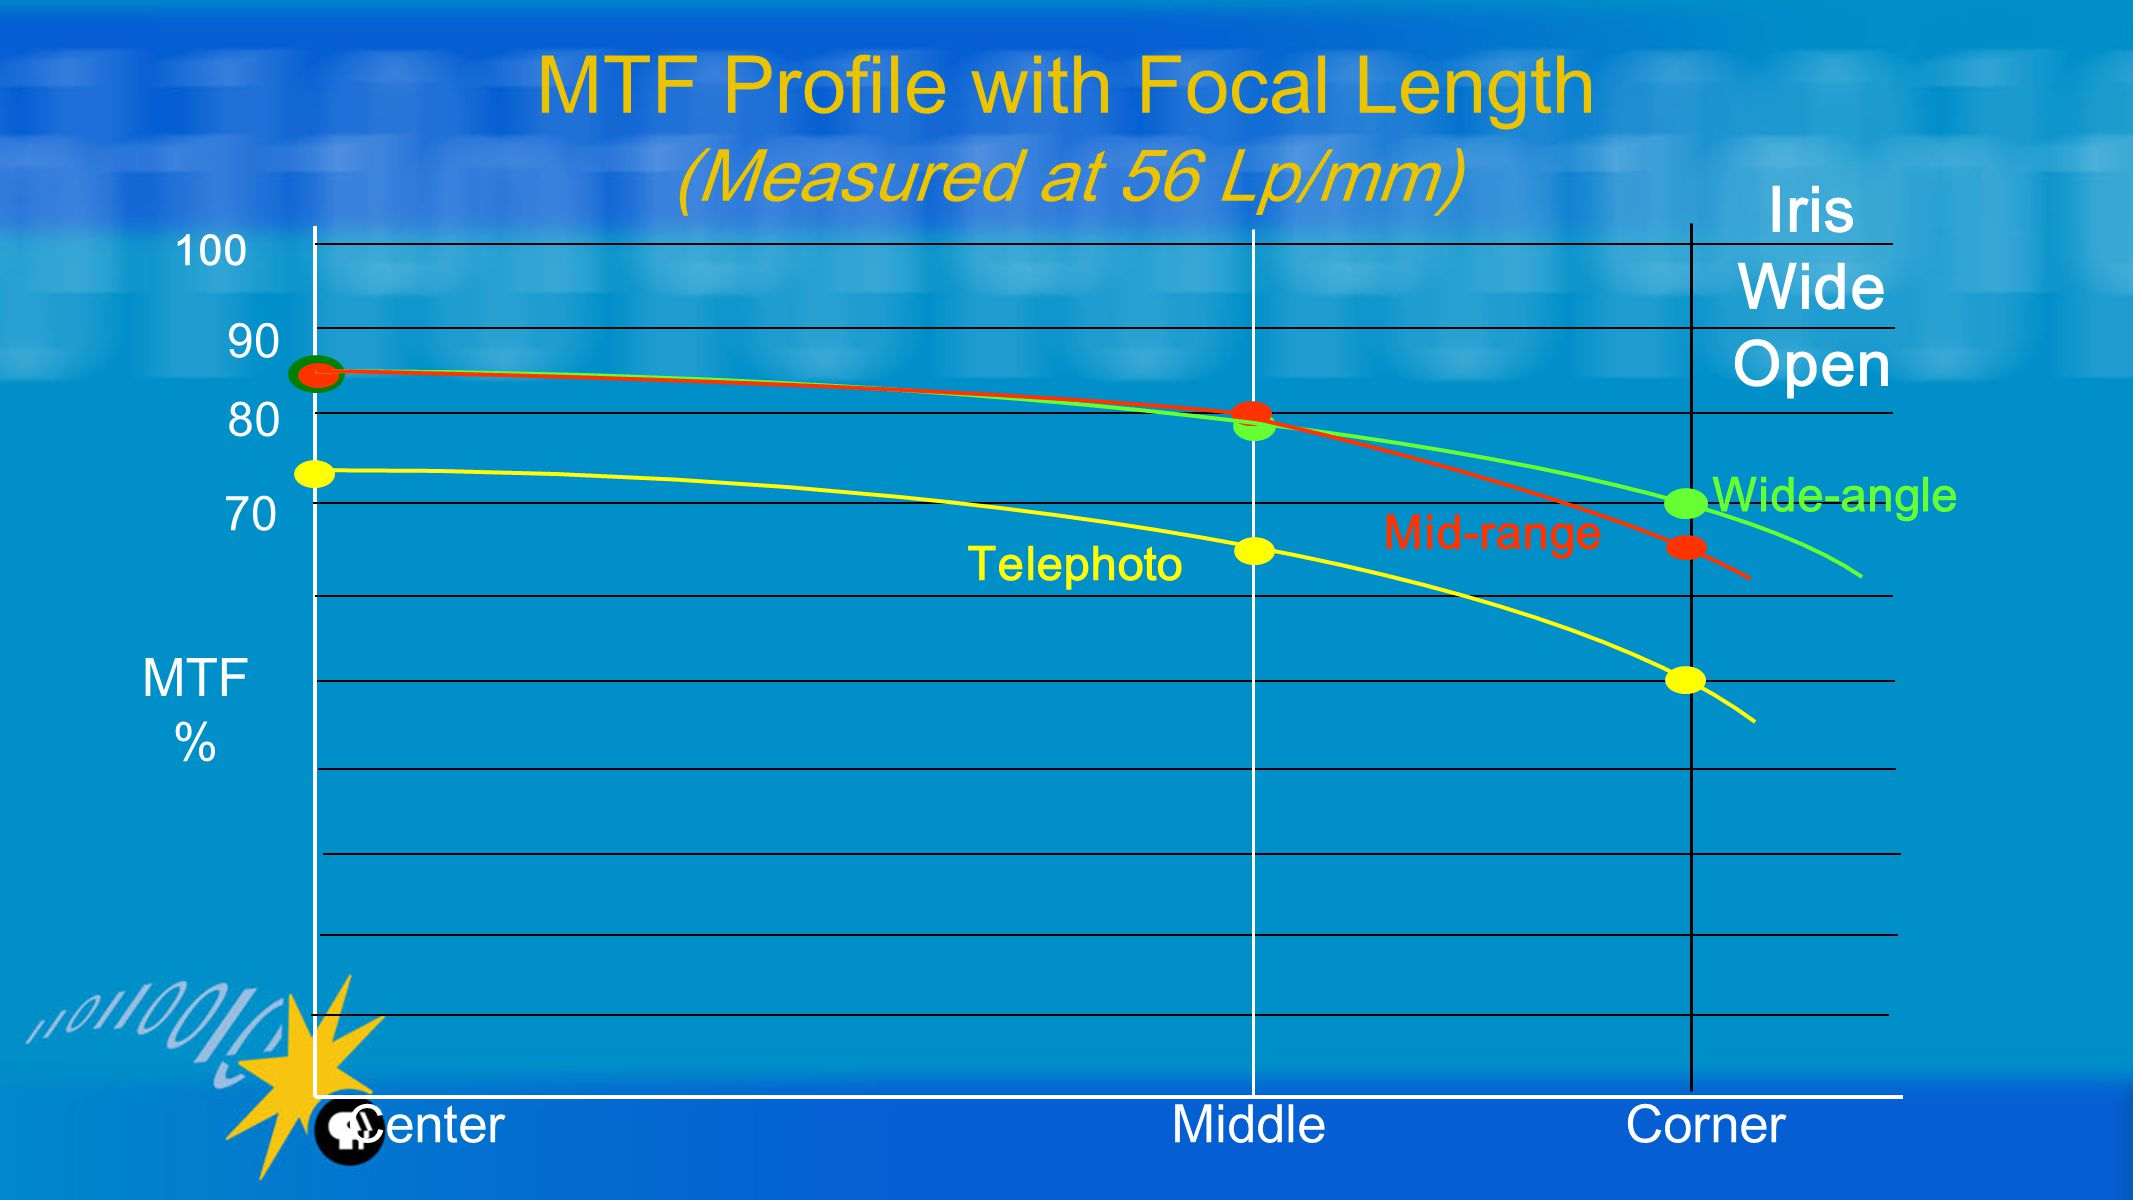 MTF Profile with Focal Length (Measured at 56 Lp/mm) 100 90 80 70 Wide-angle Telephoto Mid-range MTF % Center Middle Corner Iris Wide Open